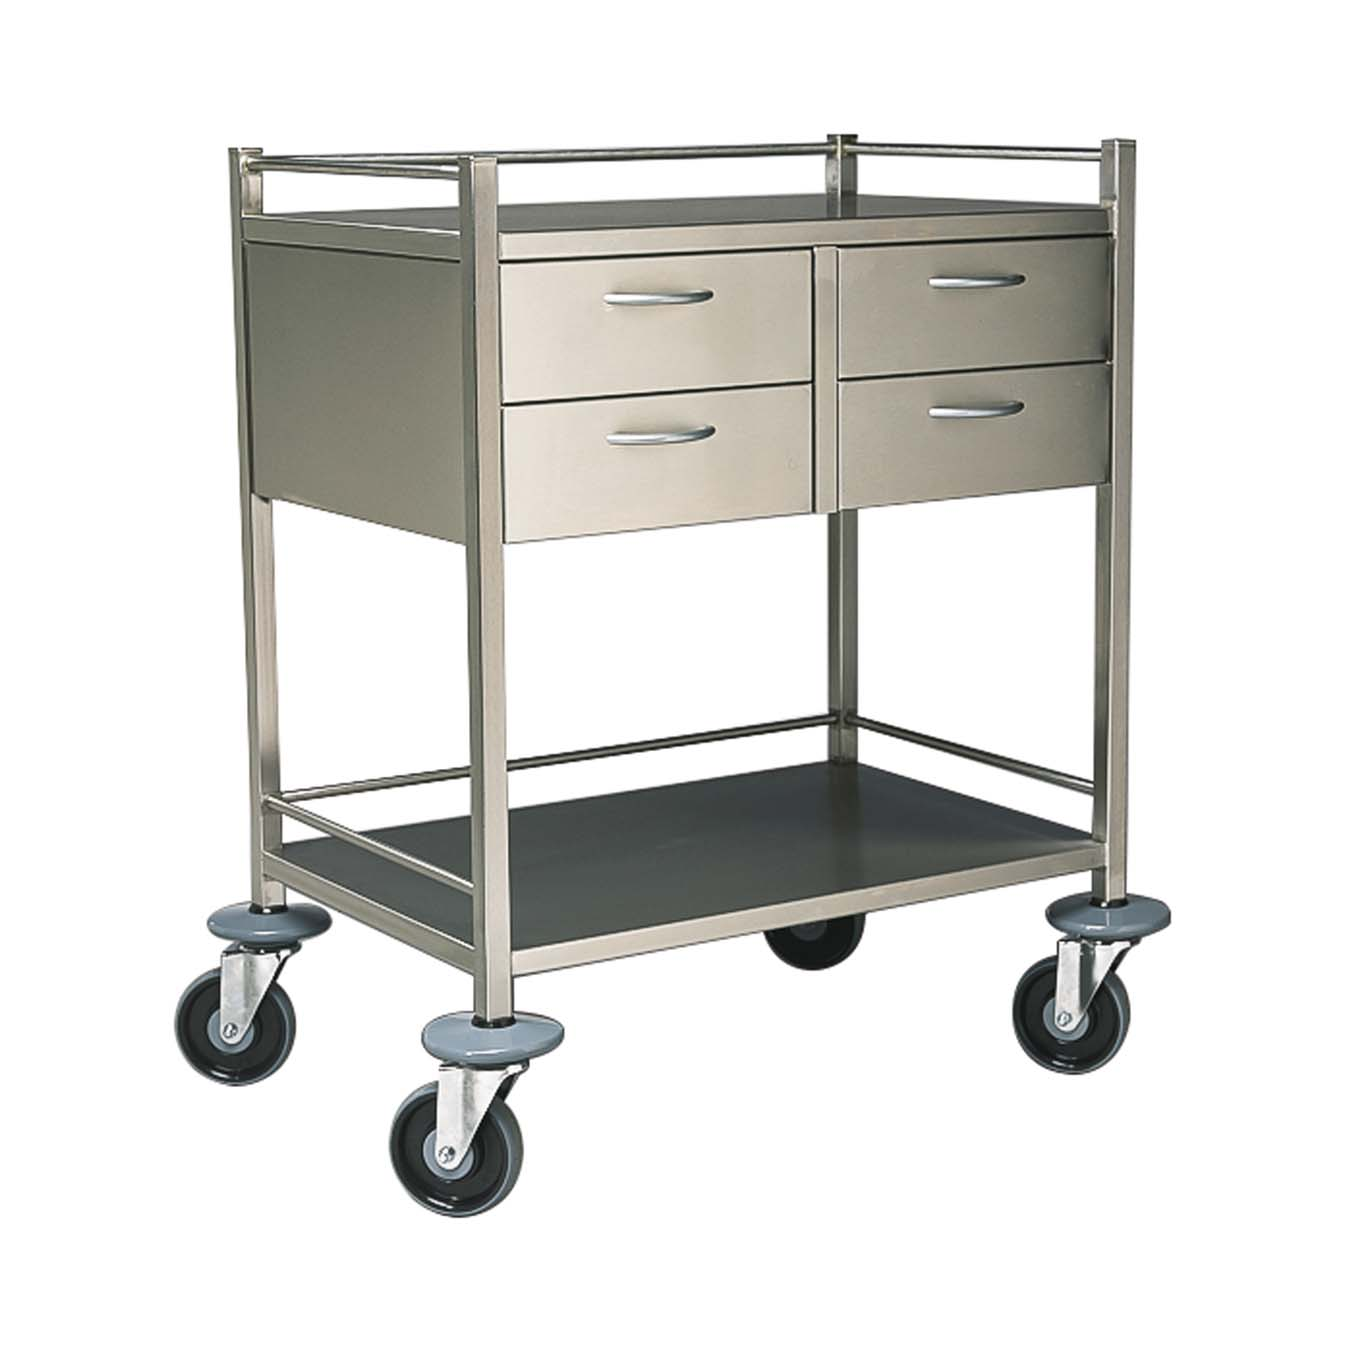 AX107_1_Resuscitation-Trolley-4-Drawer-Stainless-Steel_750x490x900mm_1